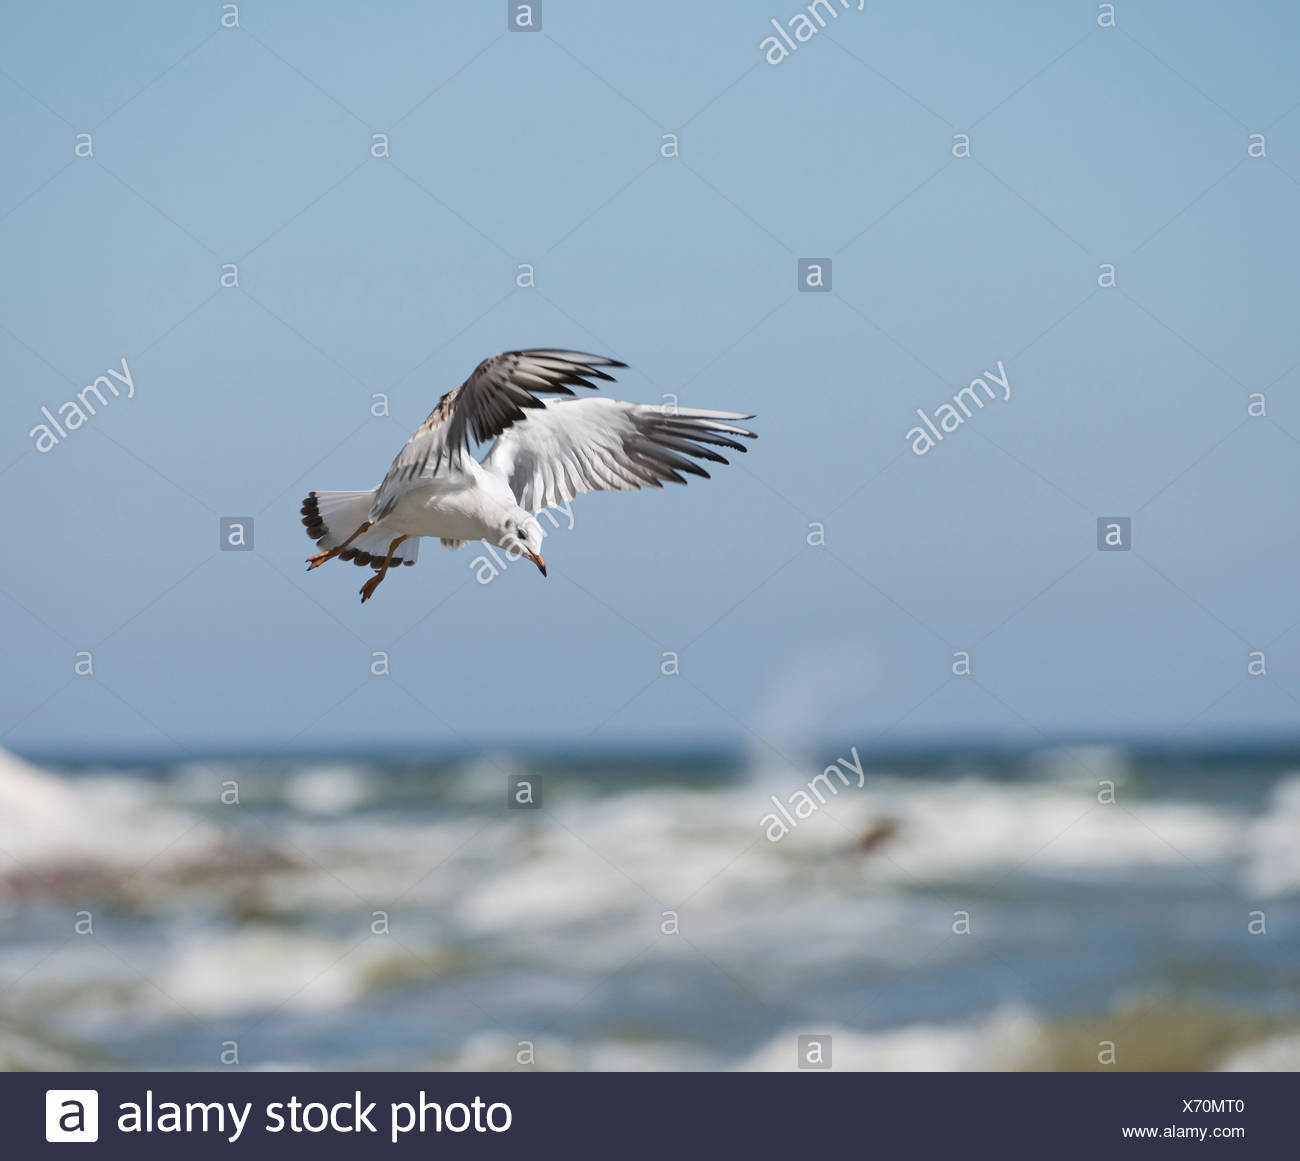 Black-headed Gull (Chroicocephalus ridibundus) in flight, Mecklenburg-Vorpommern, Germany Stock Photo